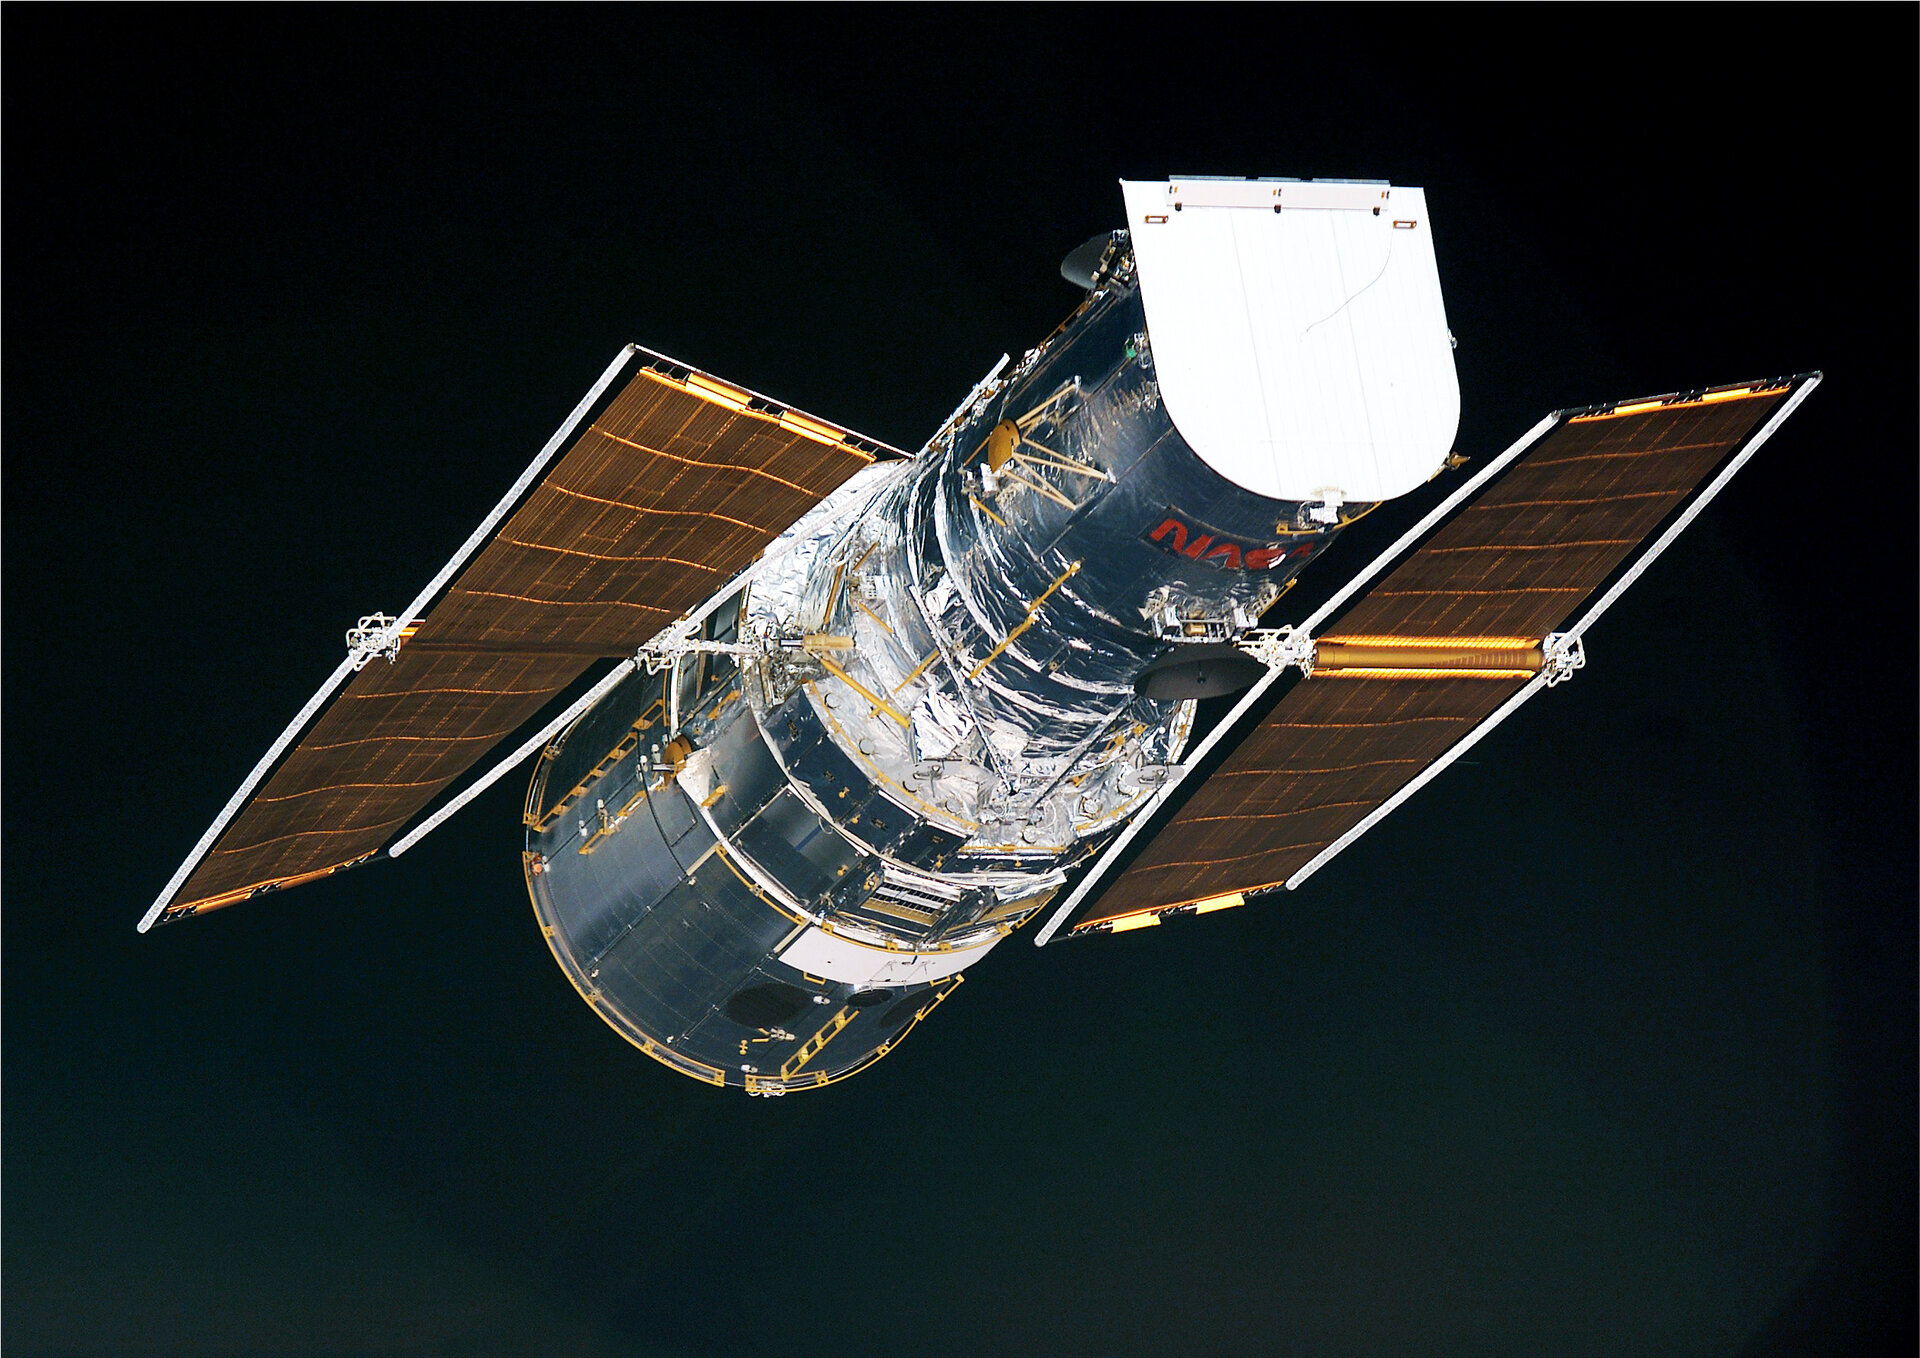 Hubble with its second set of ESA-designed solar blankets